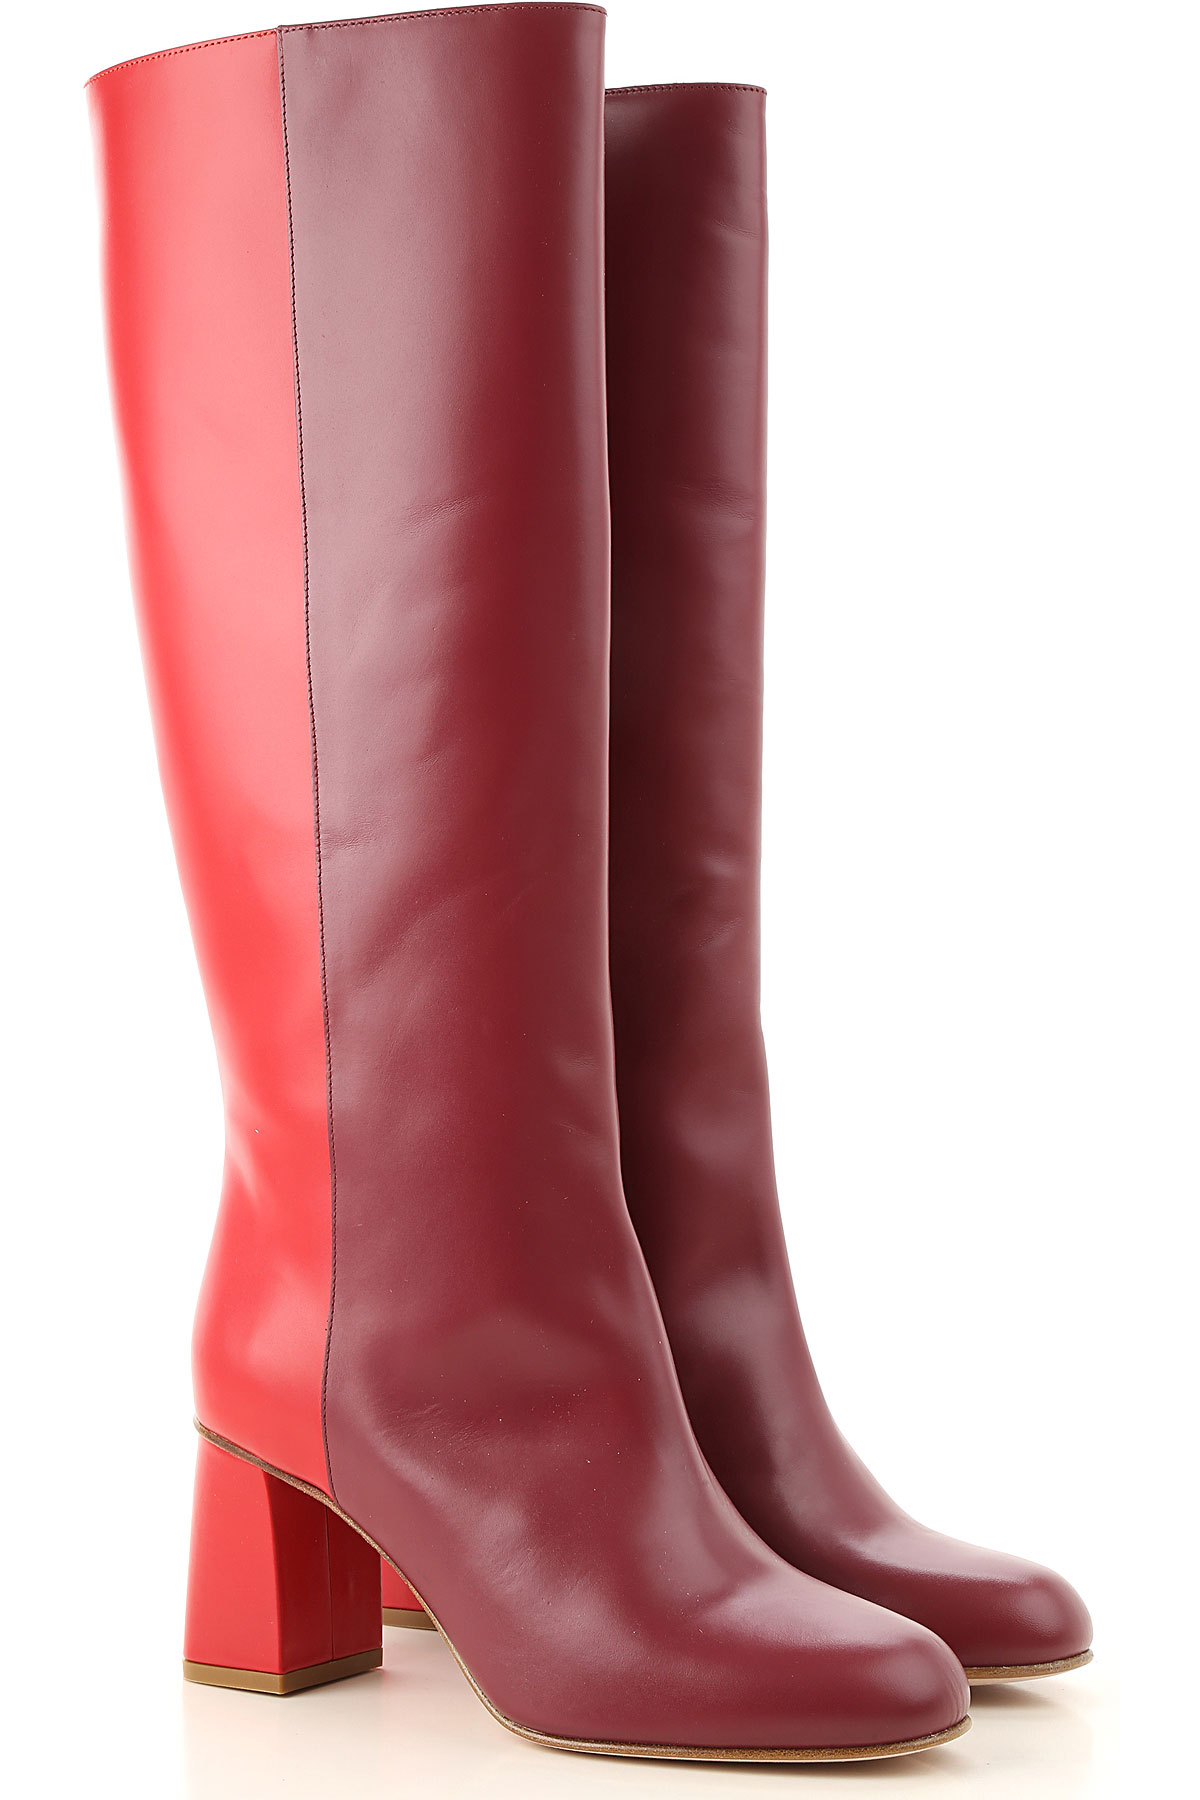 RED Valentino Boots for Women, Booties On Sale in Outlet, Red, Leather, 2019, 7 9